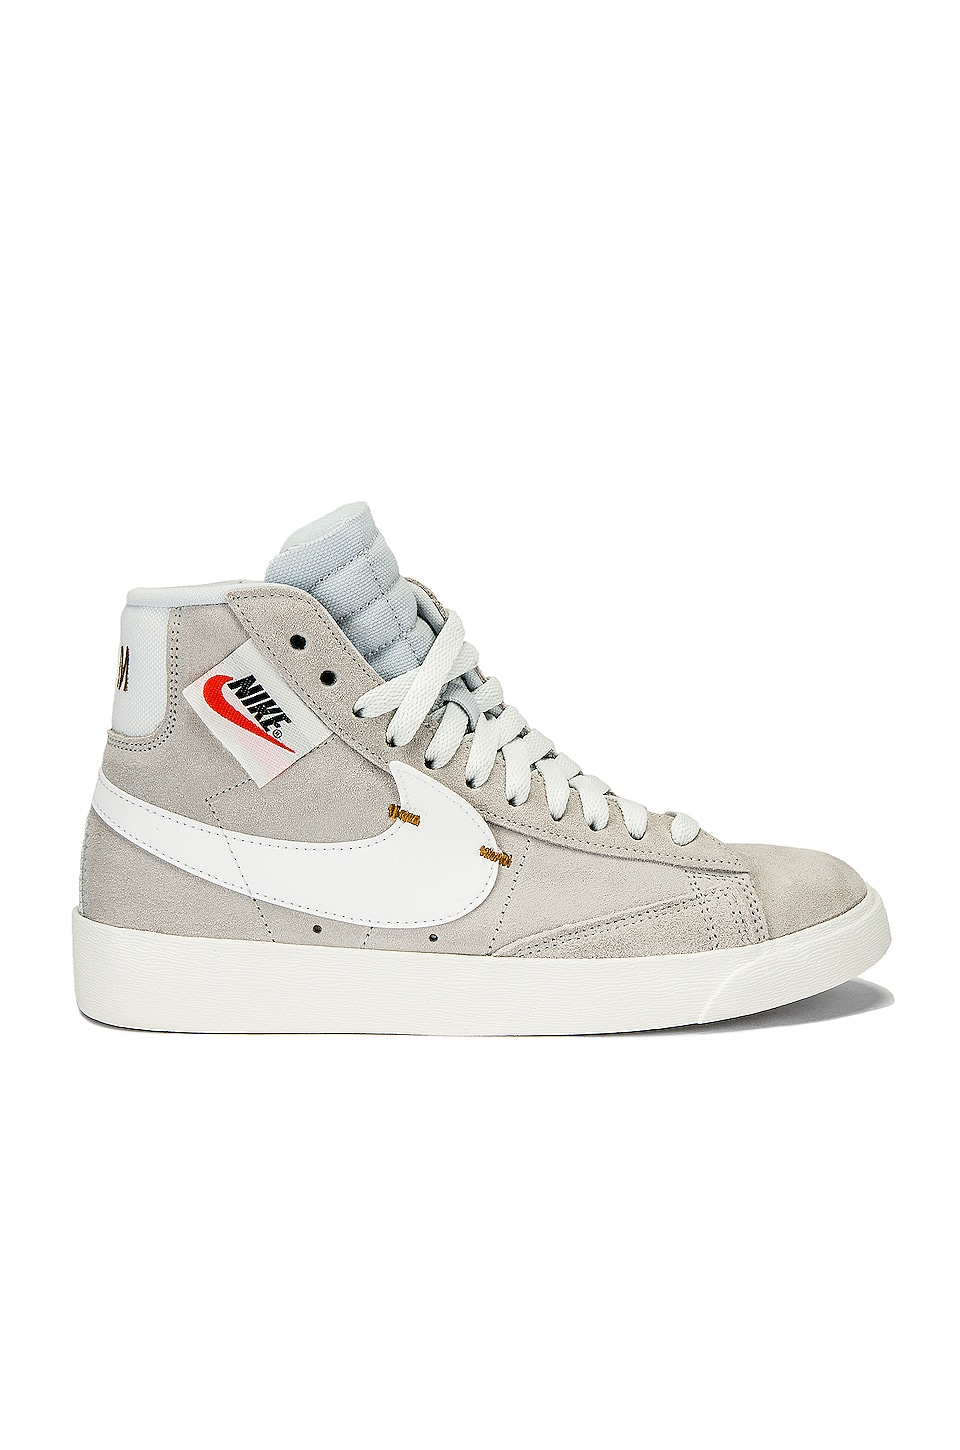 Nike Blazer Mid Rebel Sneaker in Neutral